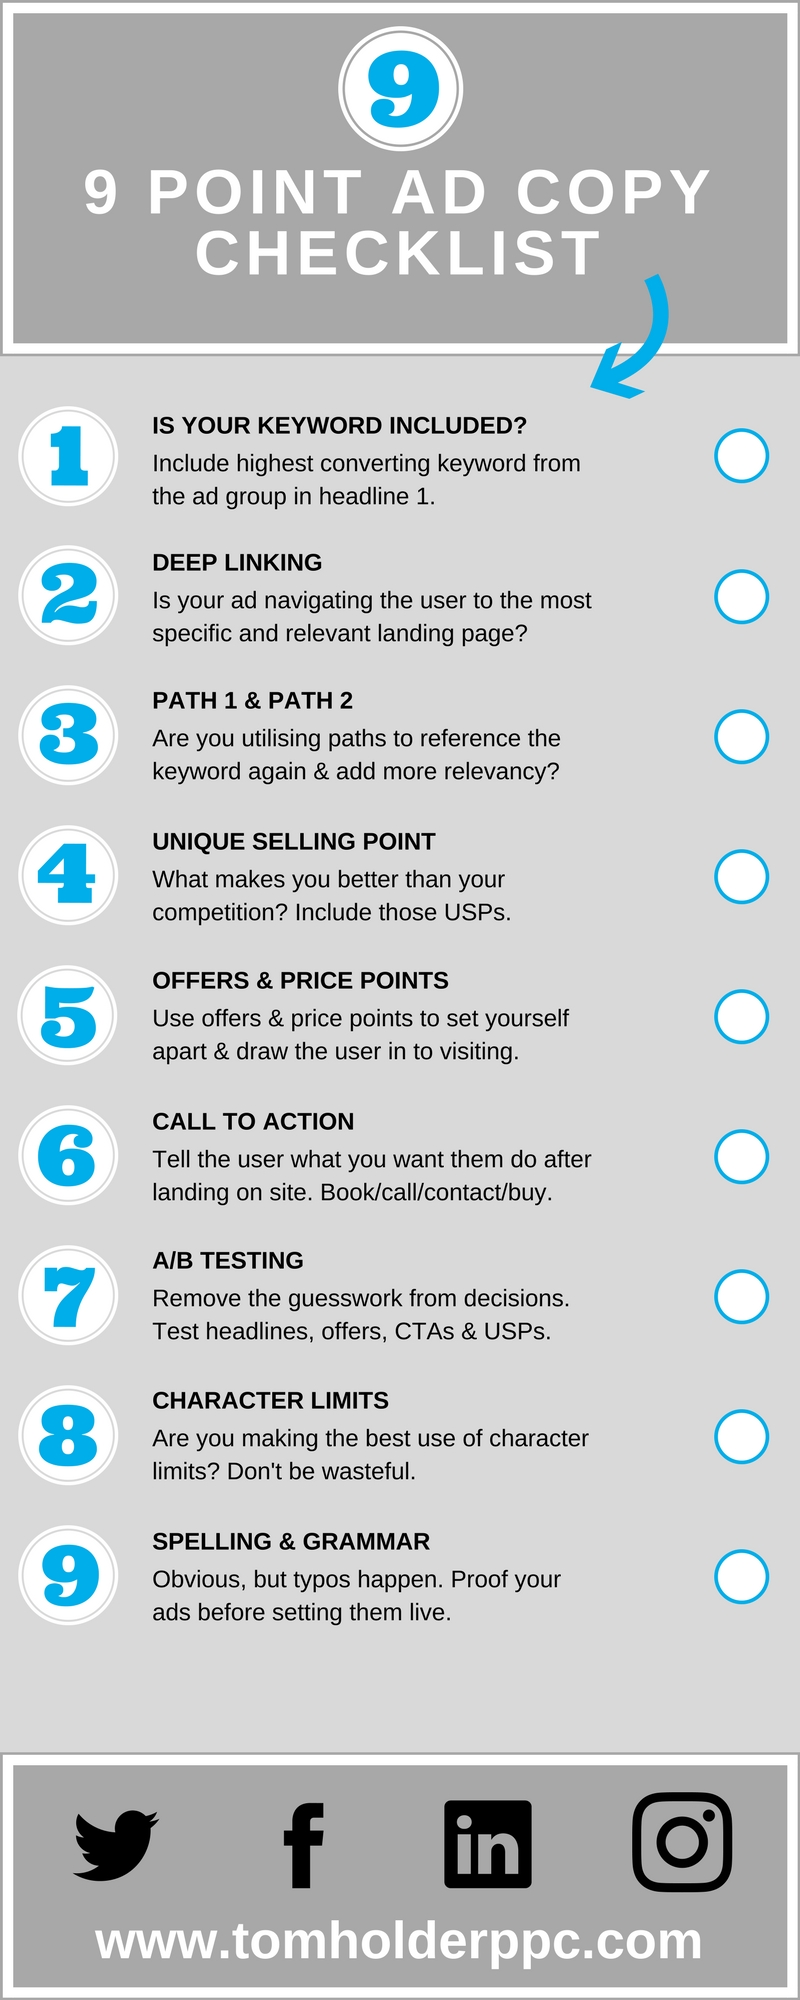 9 Point Ad Copy Checklist Infographic